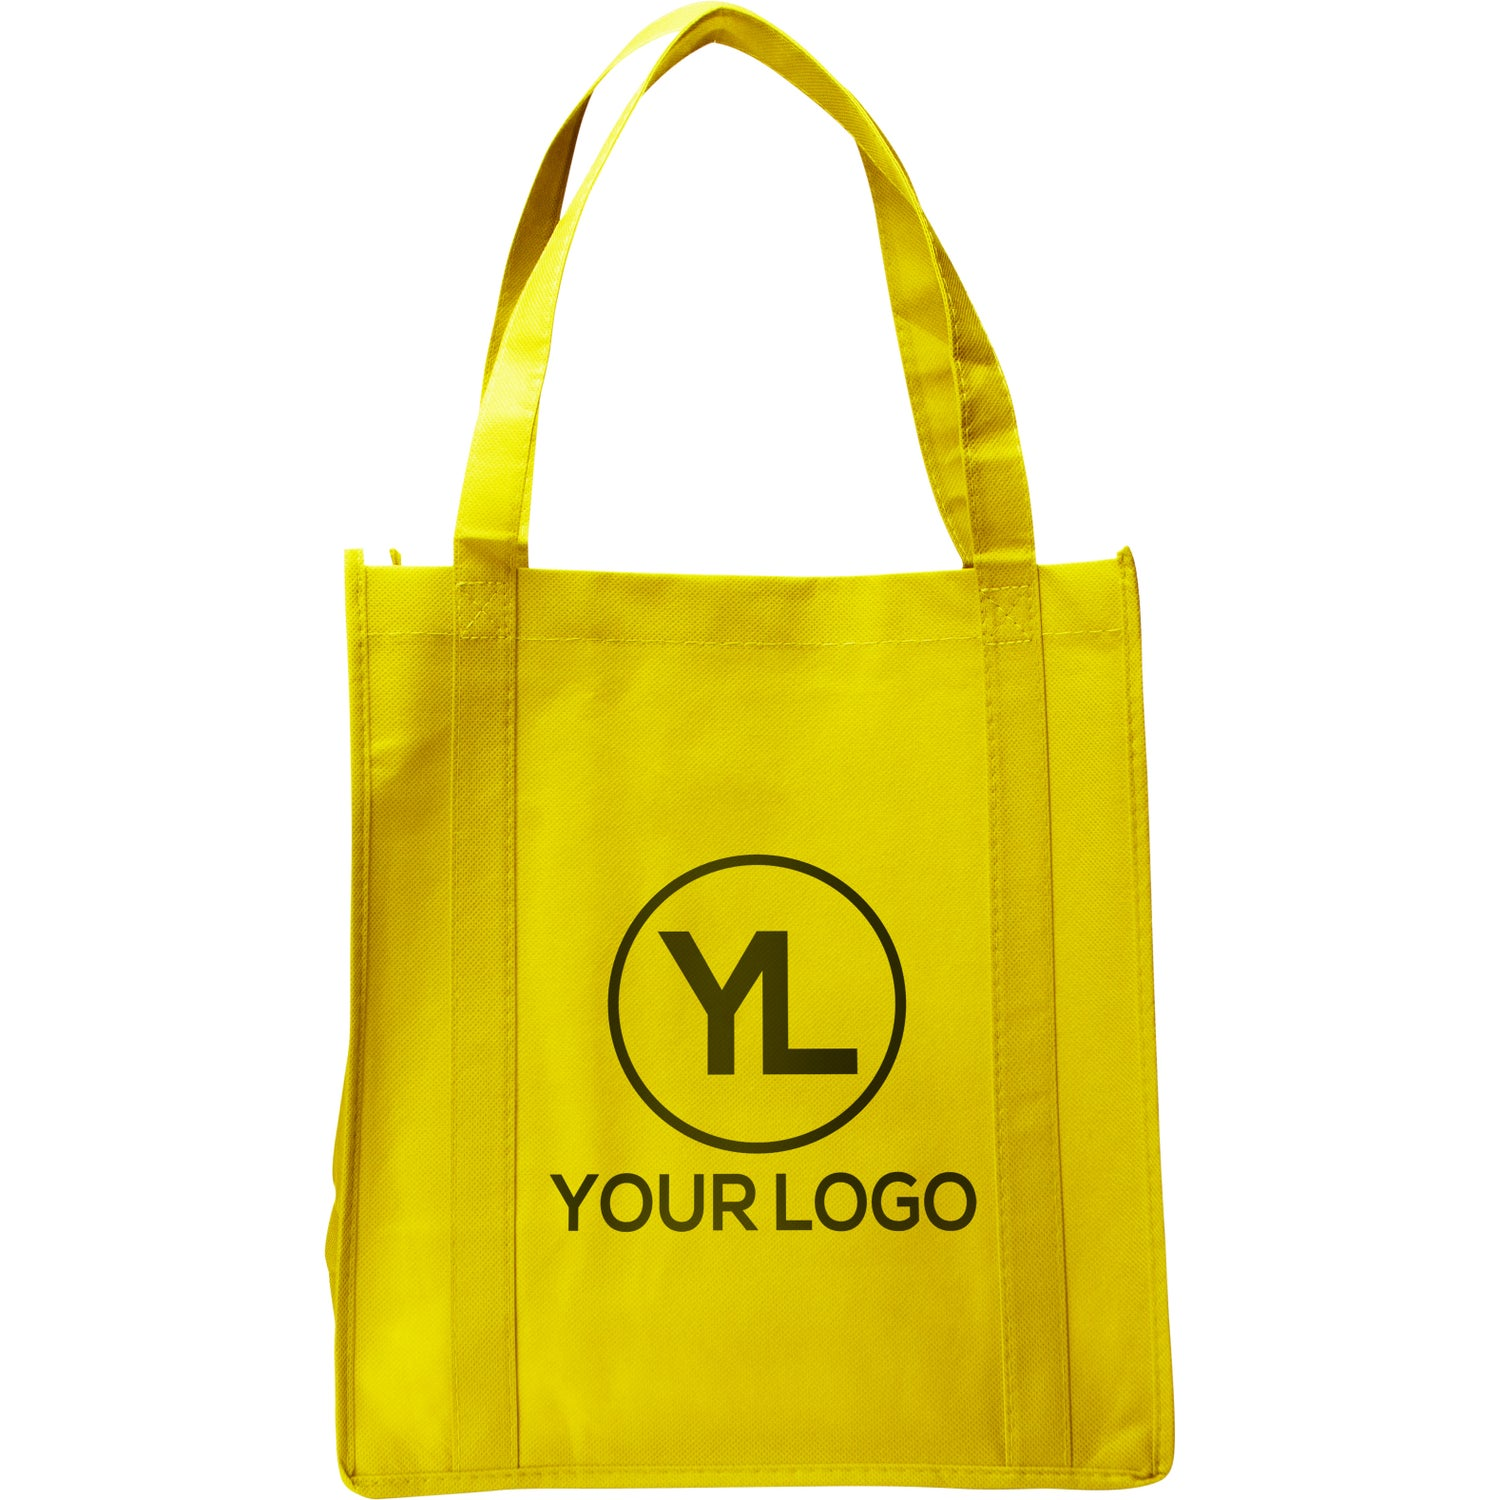 7a67886c8f5 Promotional Large Atlas Nonwoven Grocery Totes with Custom Logo for  1.22  Ea.